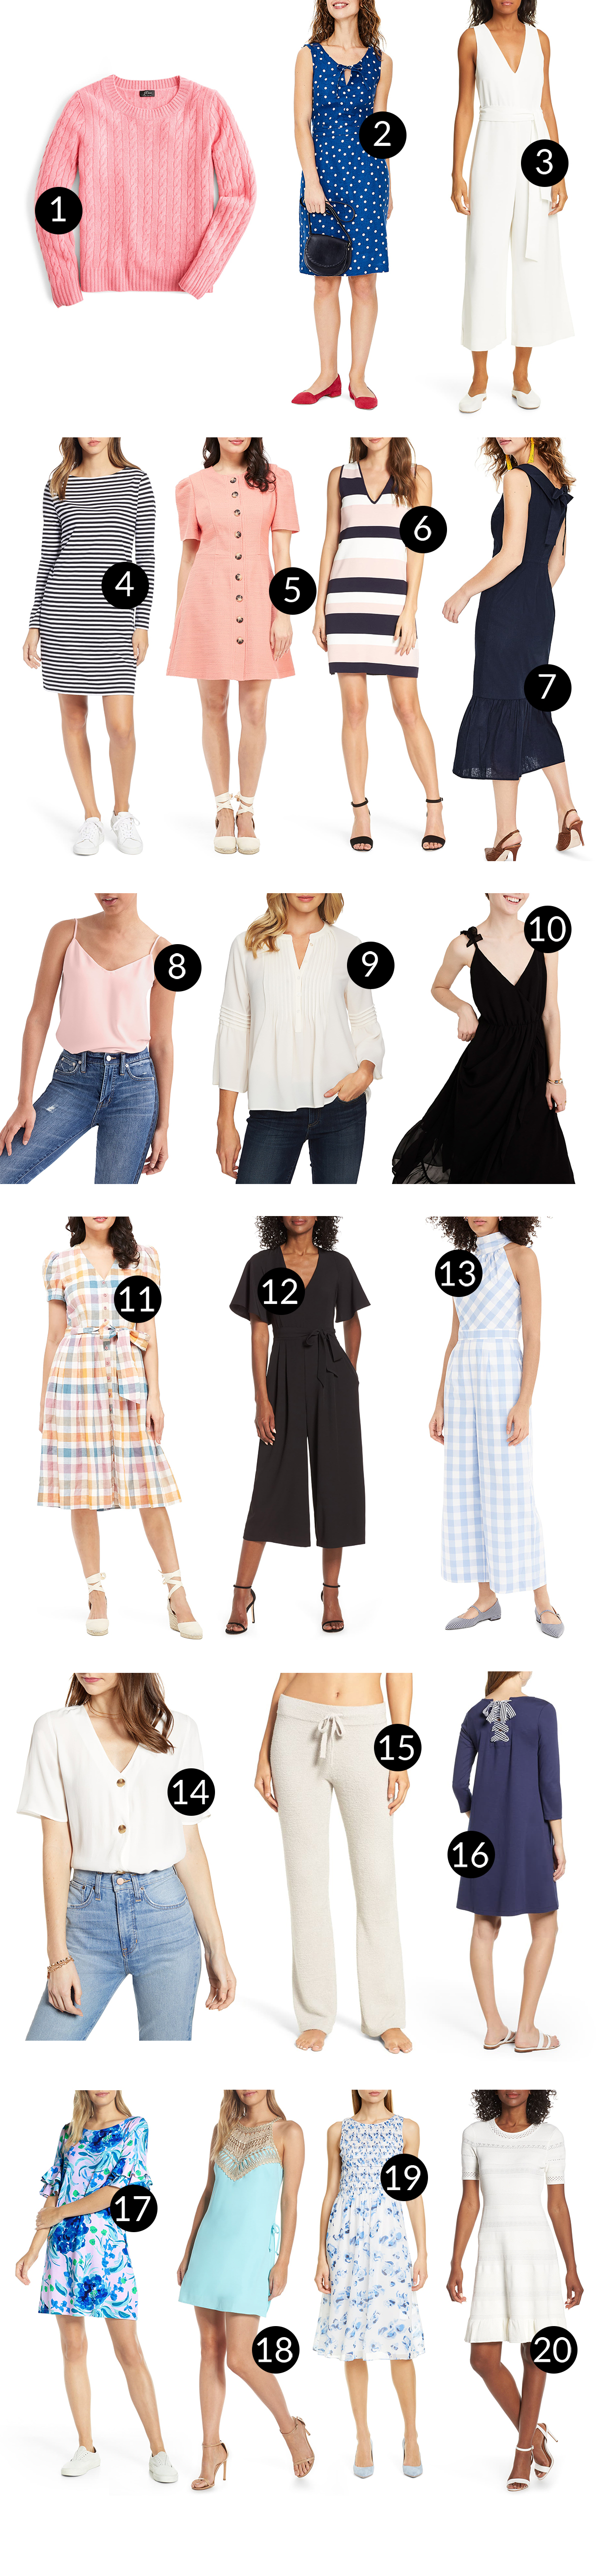 Fav pieces from Nordstrom Clothing (Half-Yearly Sale)